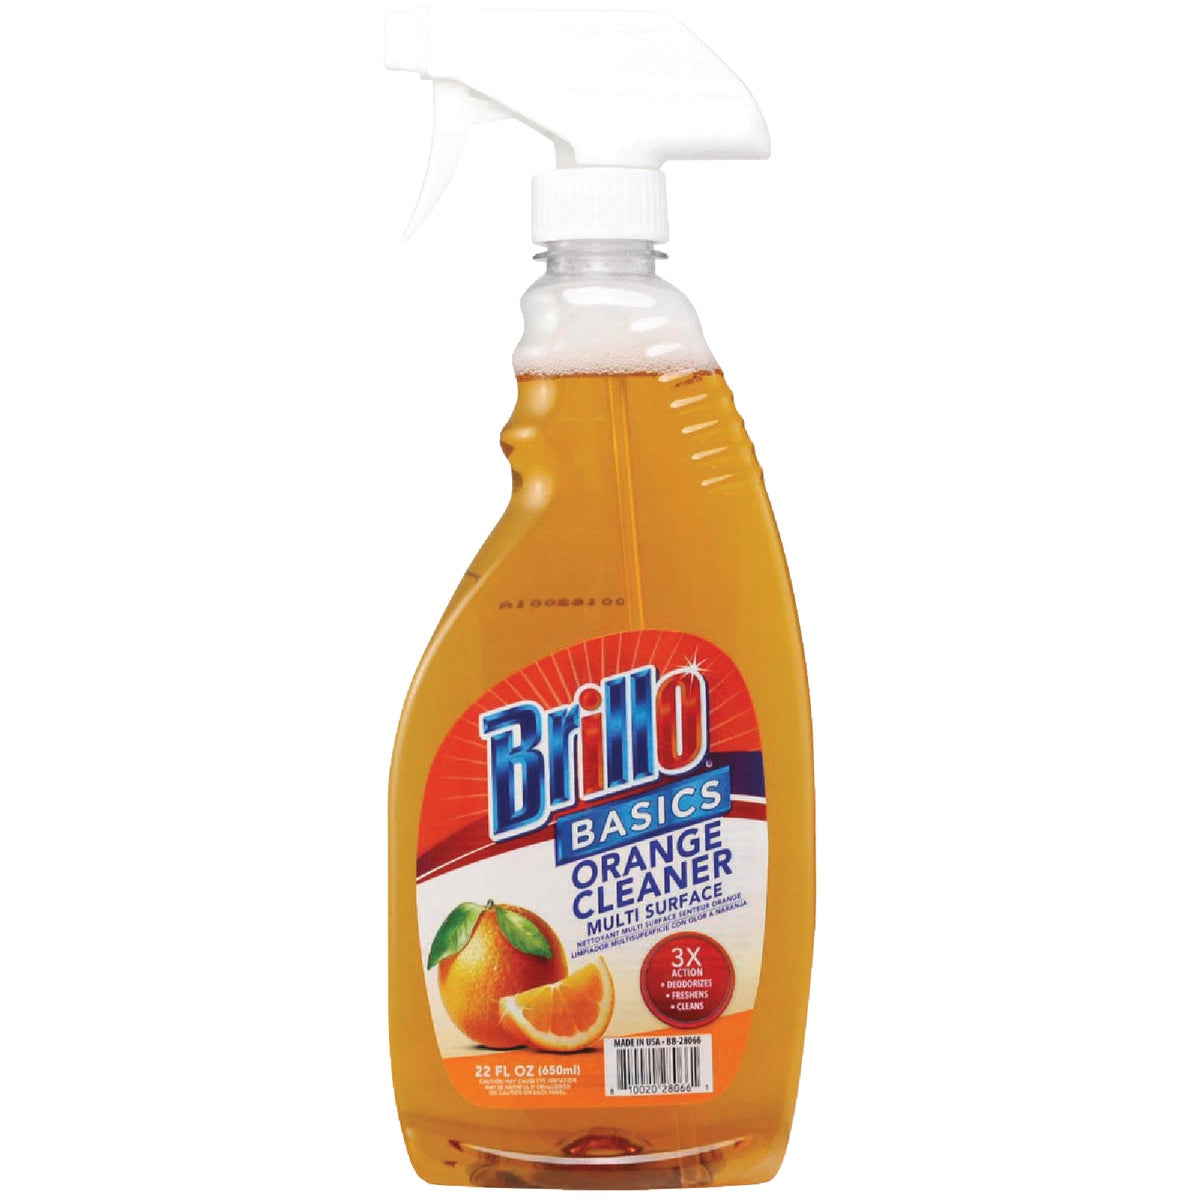 ORANGE SOLUTION CLEANER